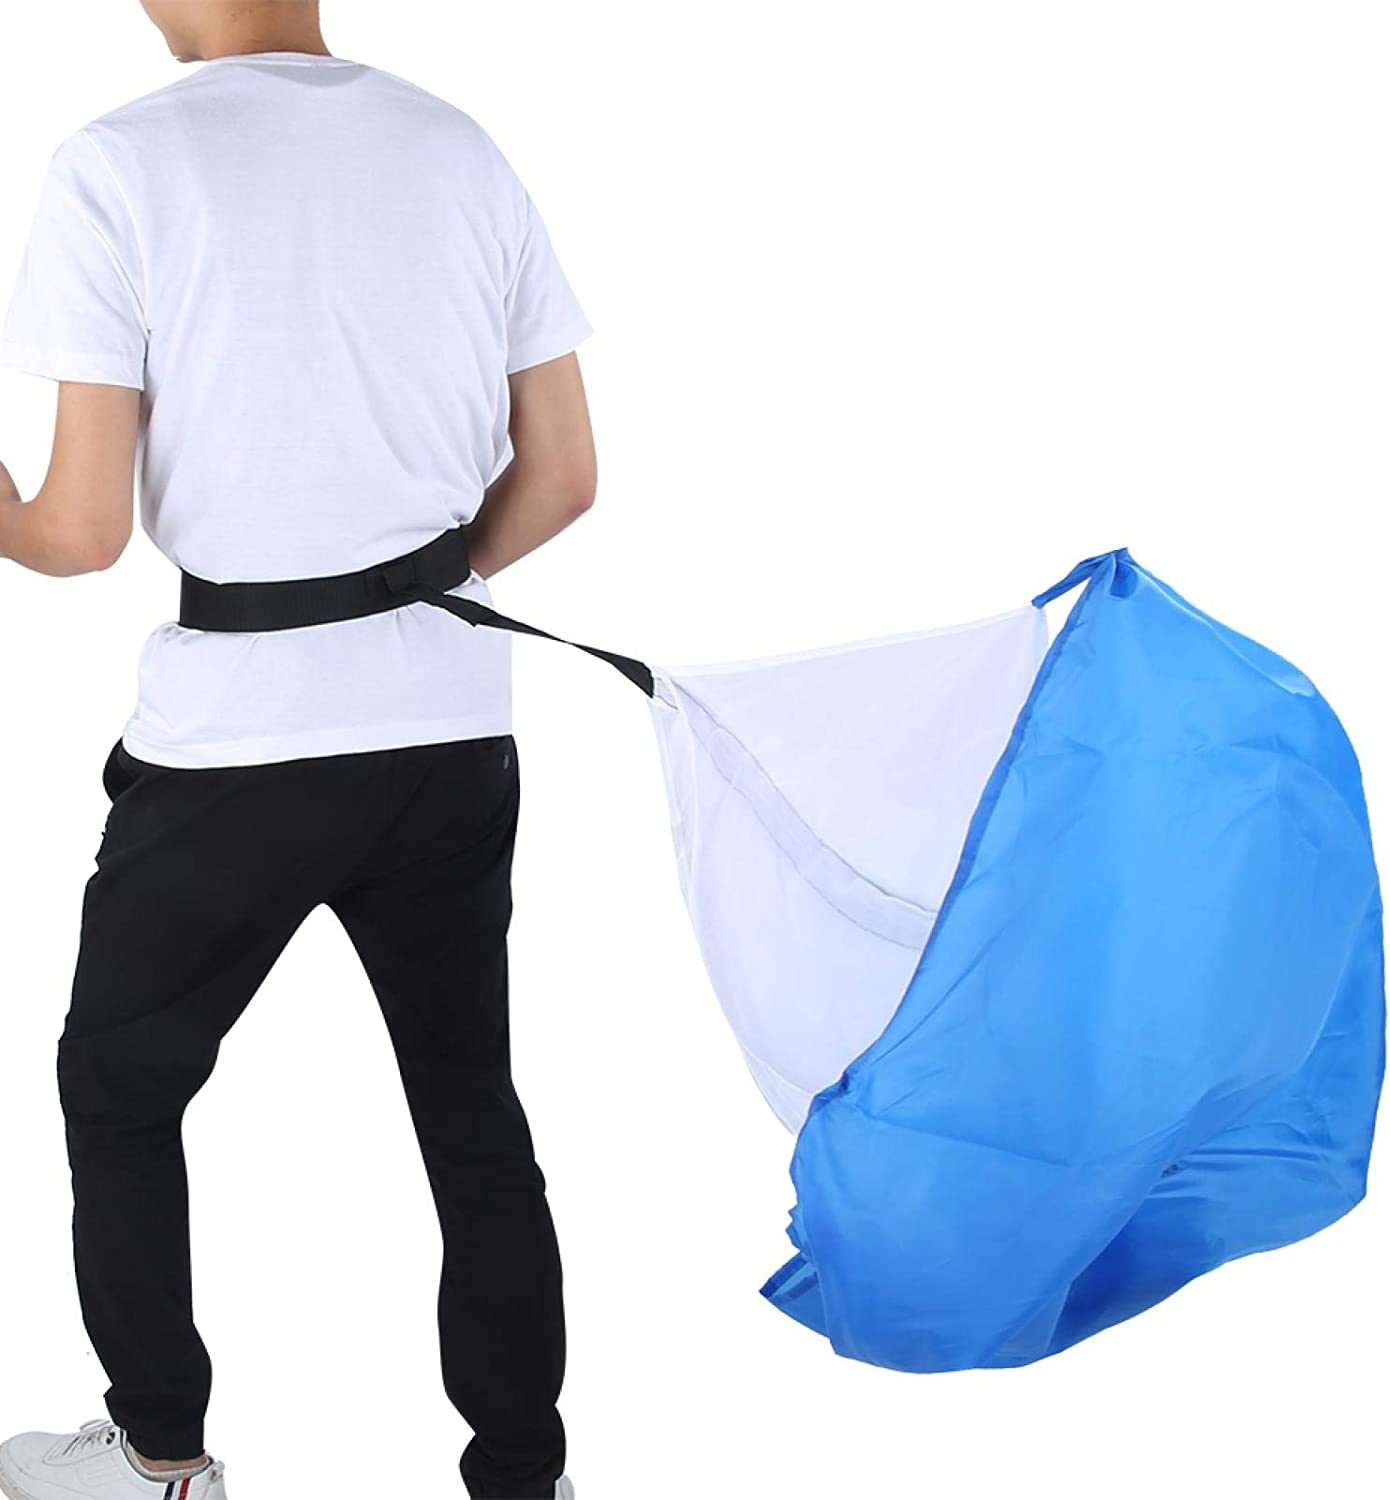 Special price for a limited time Kugga low-pricing Resistance Parachute - Para Adjustable Children